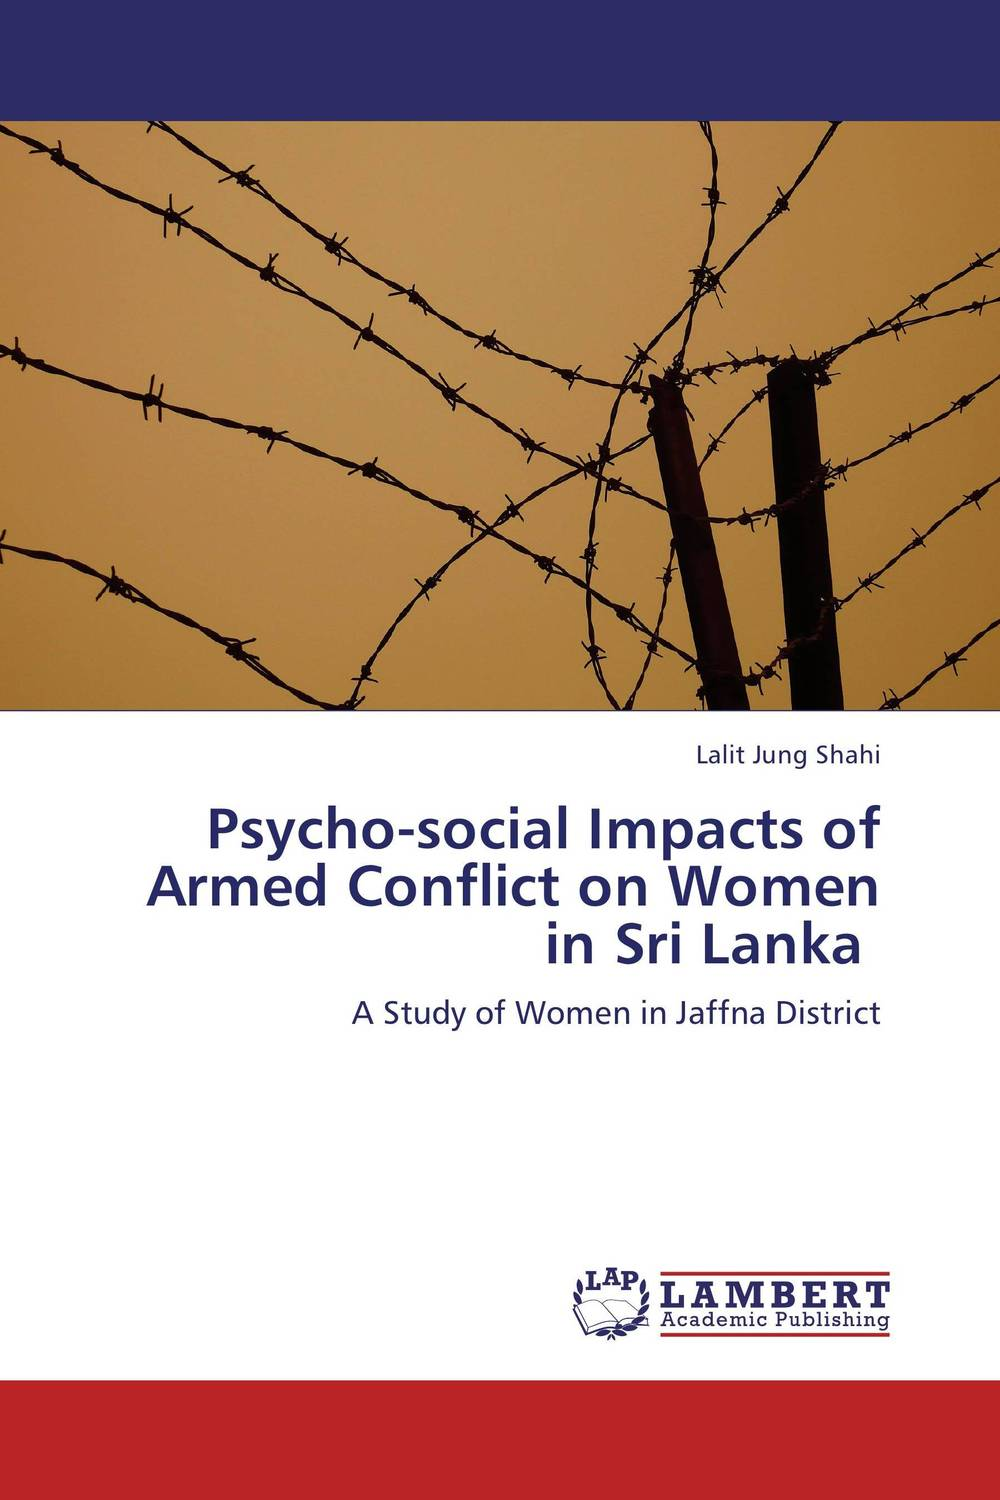 Psycho-social Impacts of Armed Conflict on Women in Sri Lanka sadiq sagheer job stress role conflict work life balance impacts on sales personnel